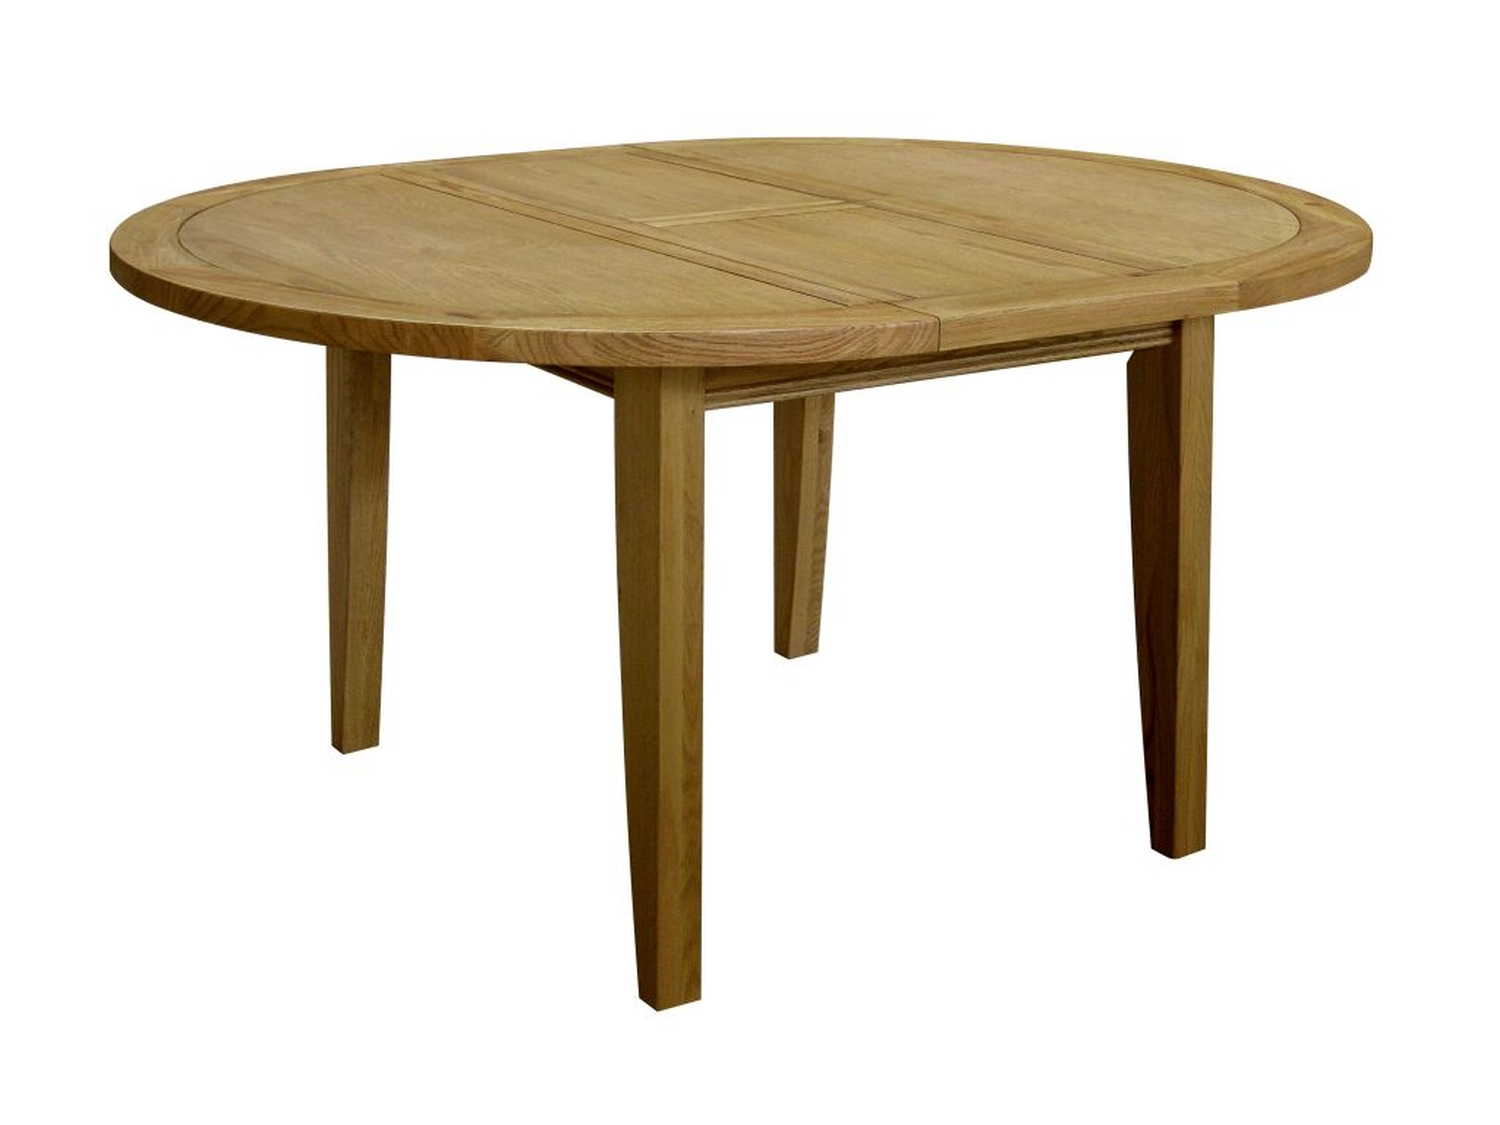 Linden oak dining room furniture round extending dining for Round dining room tables